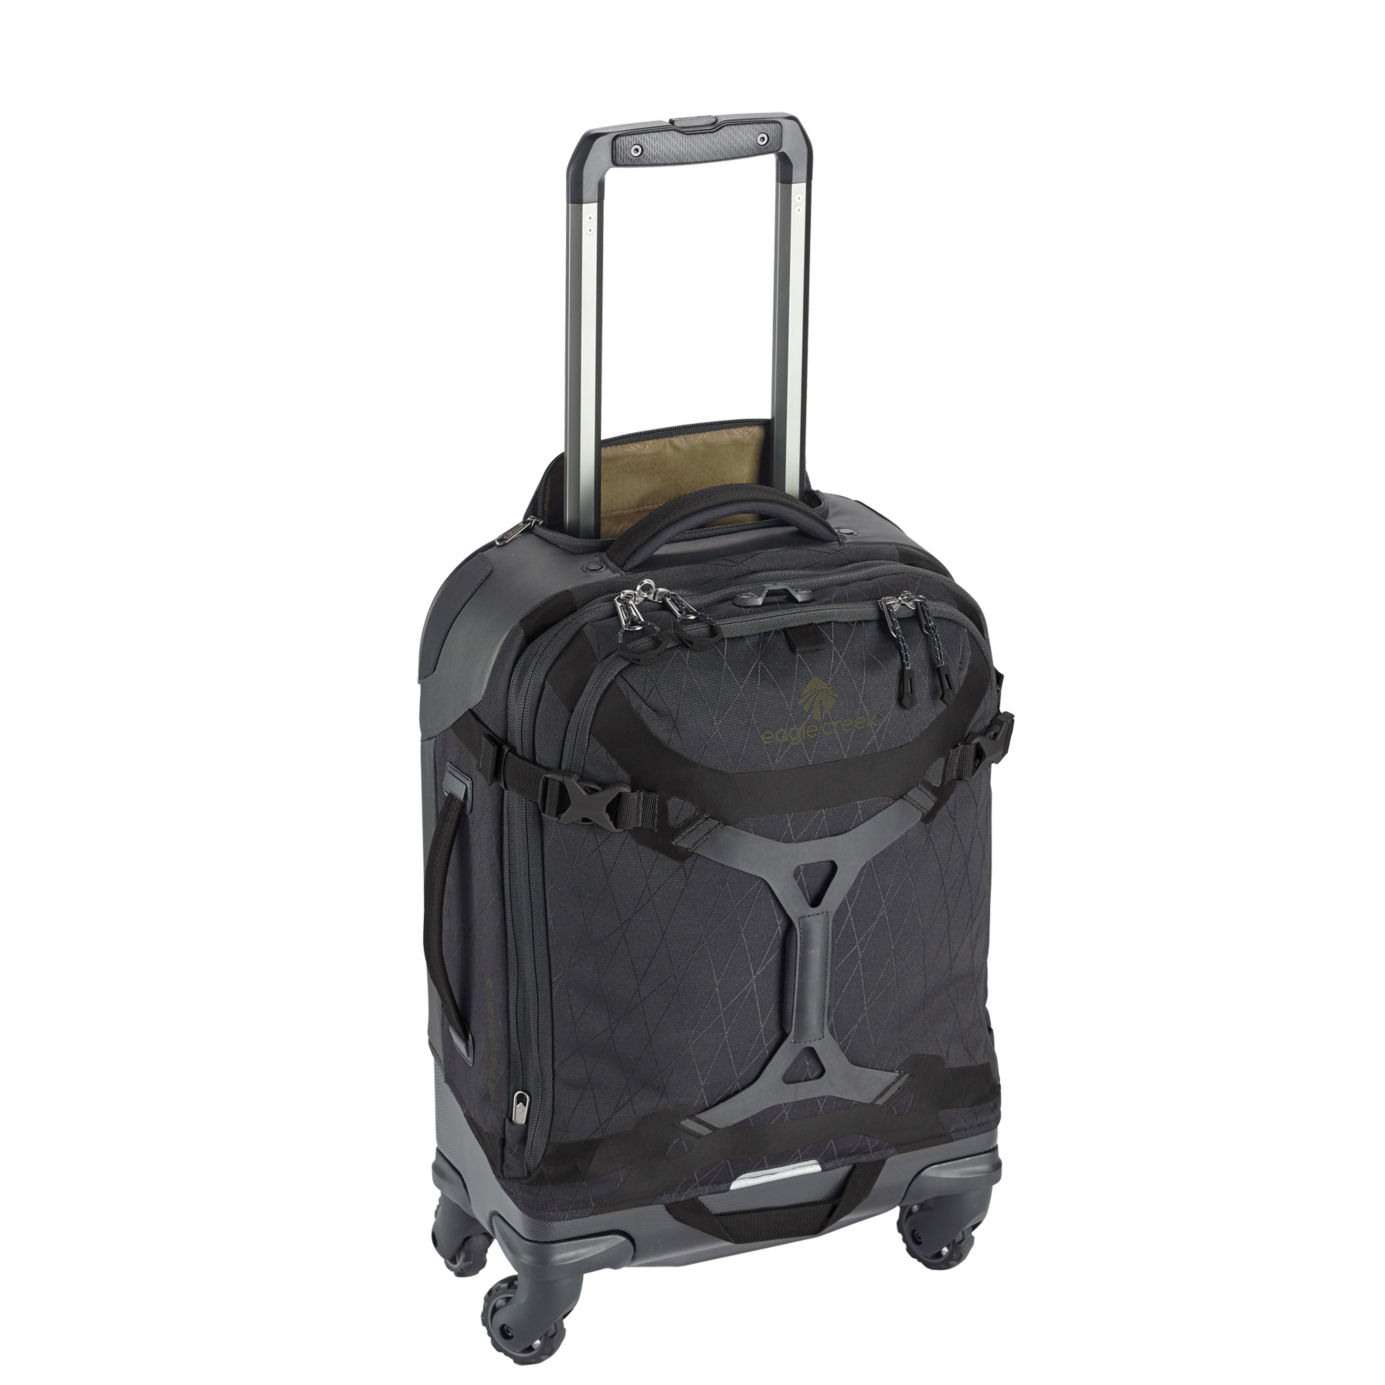 Gear Warrior 4 Wheel International Carry On